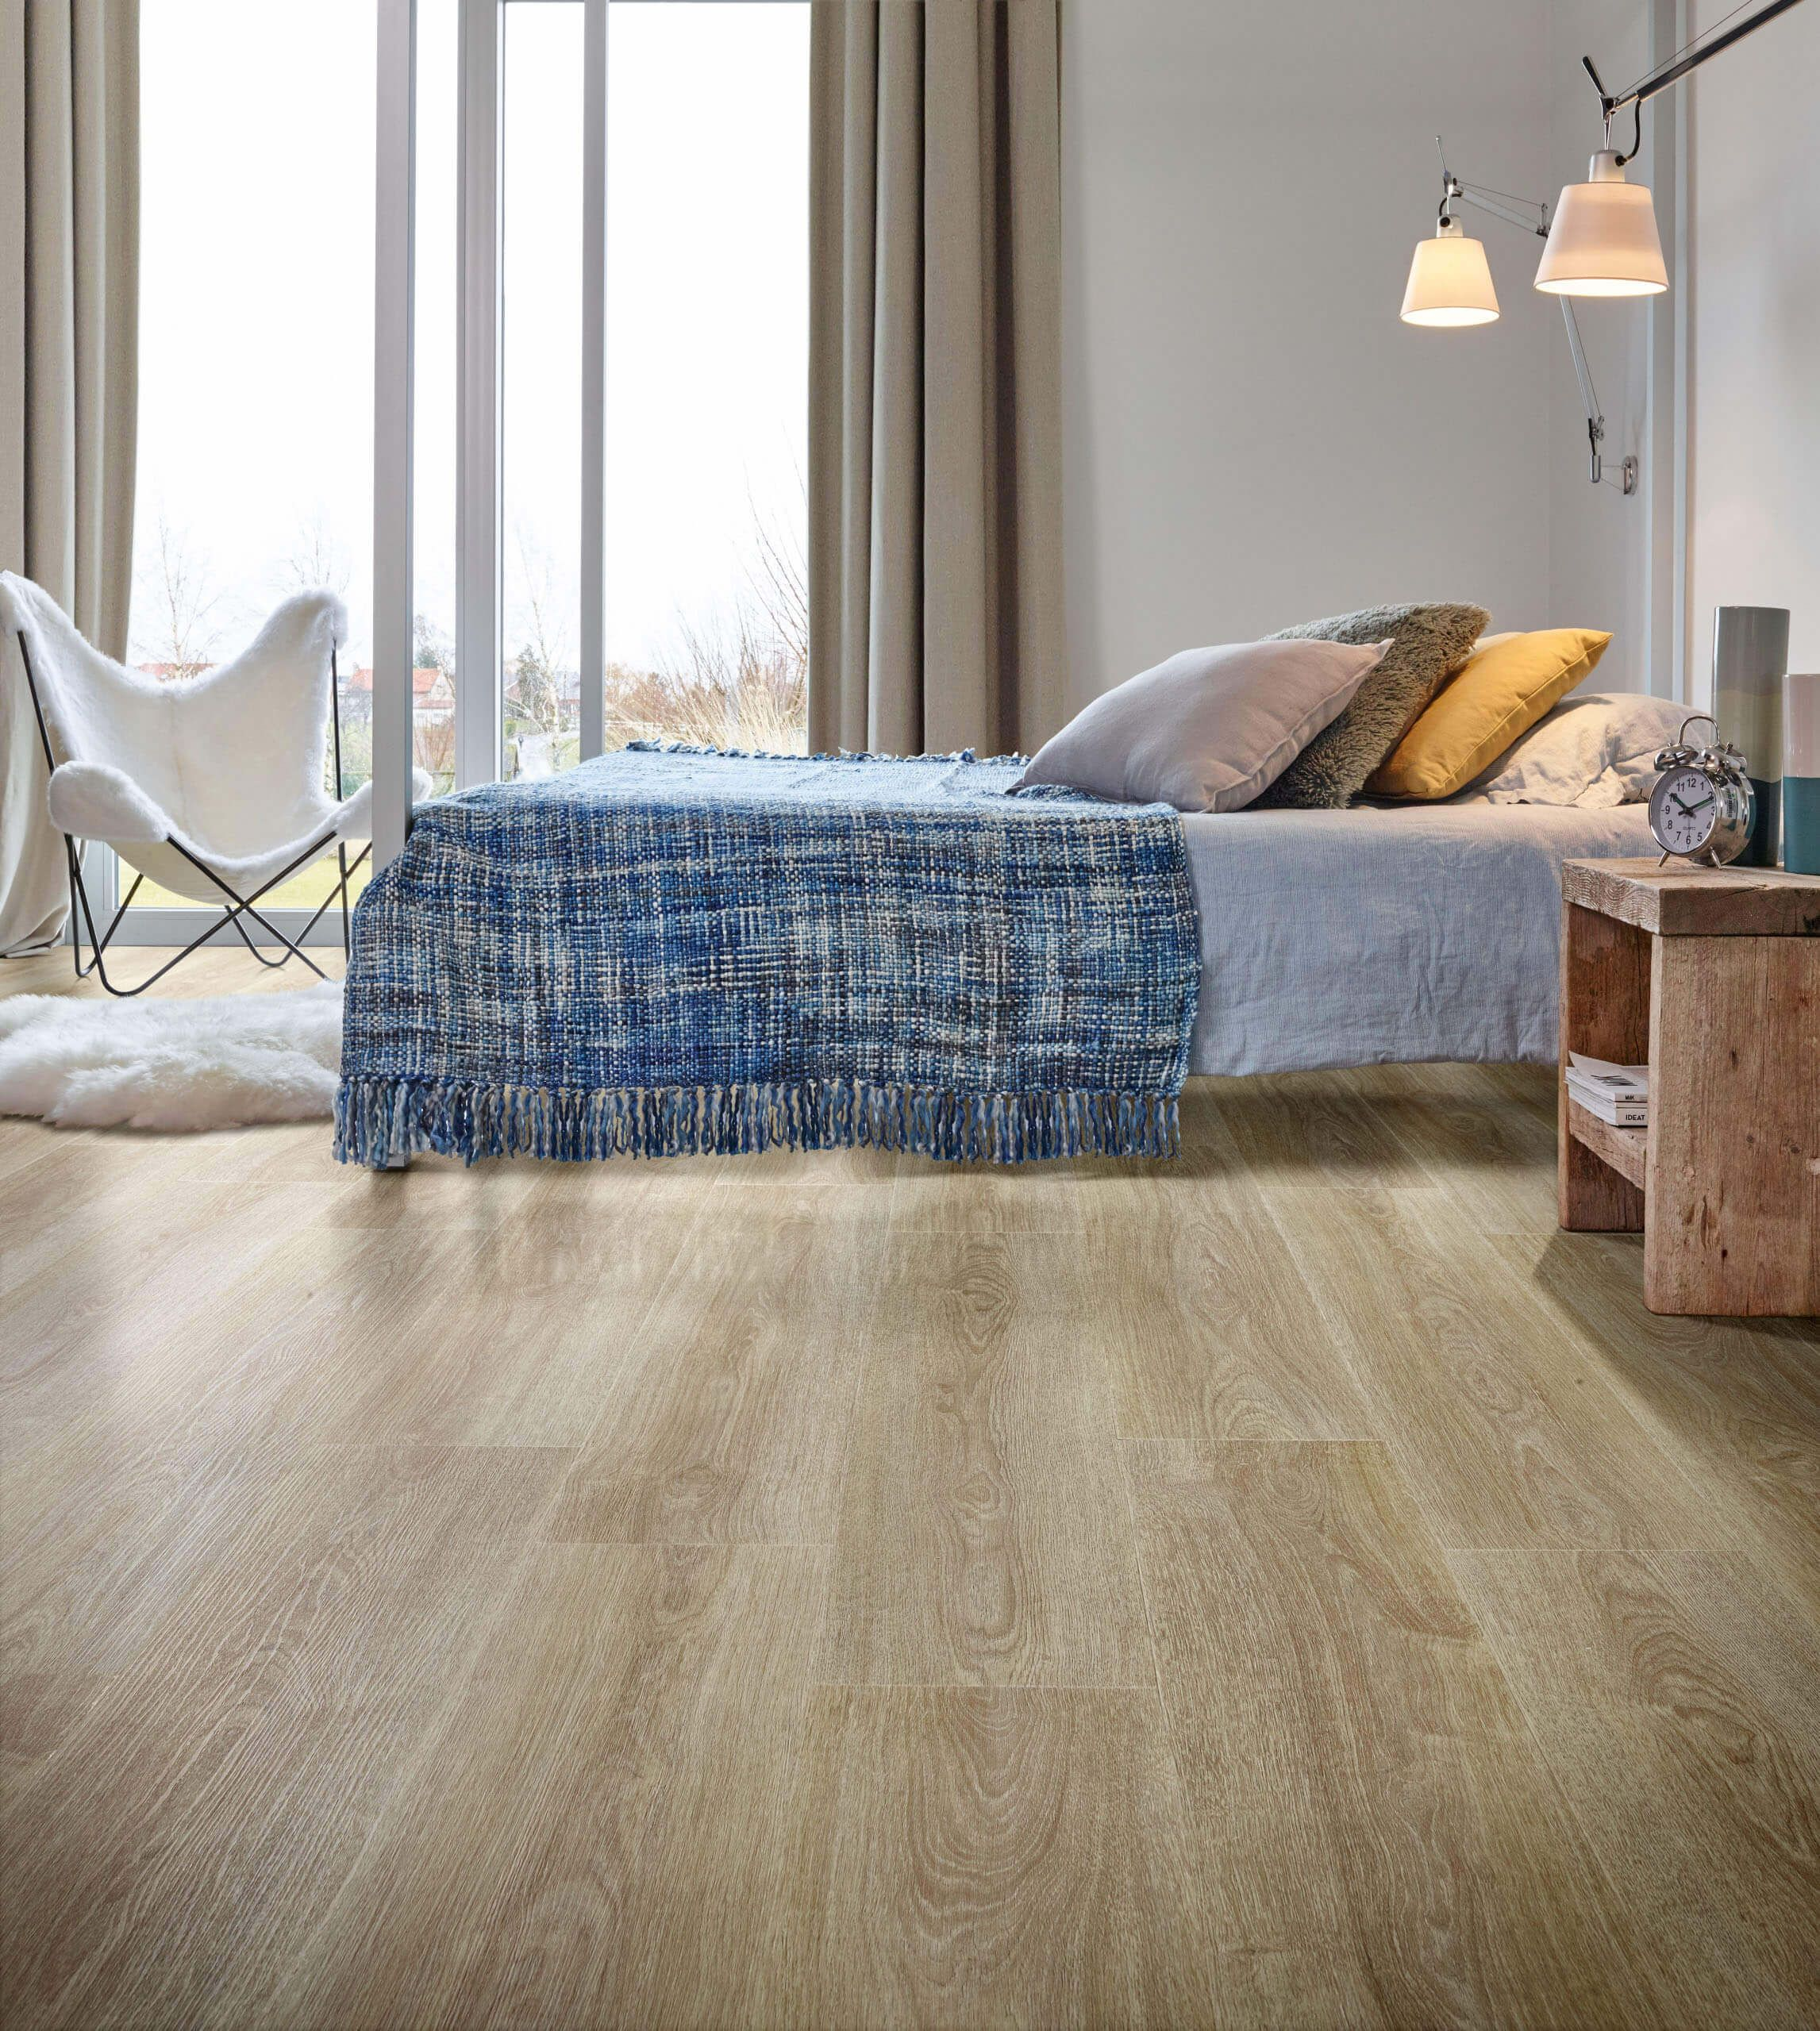 24 Modern Bedroom Vinyl Flooring Ideas Architectures